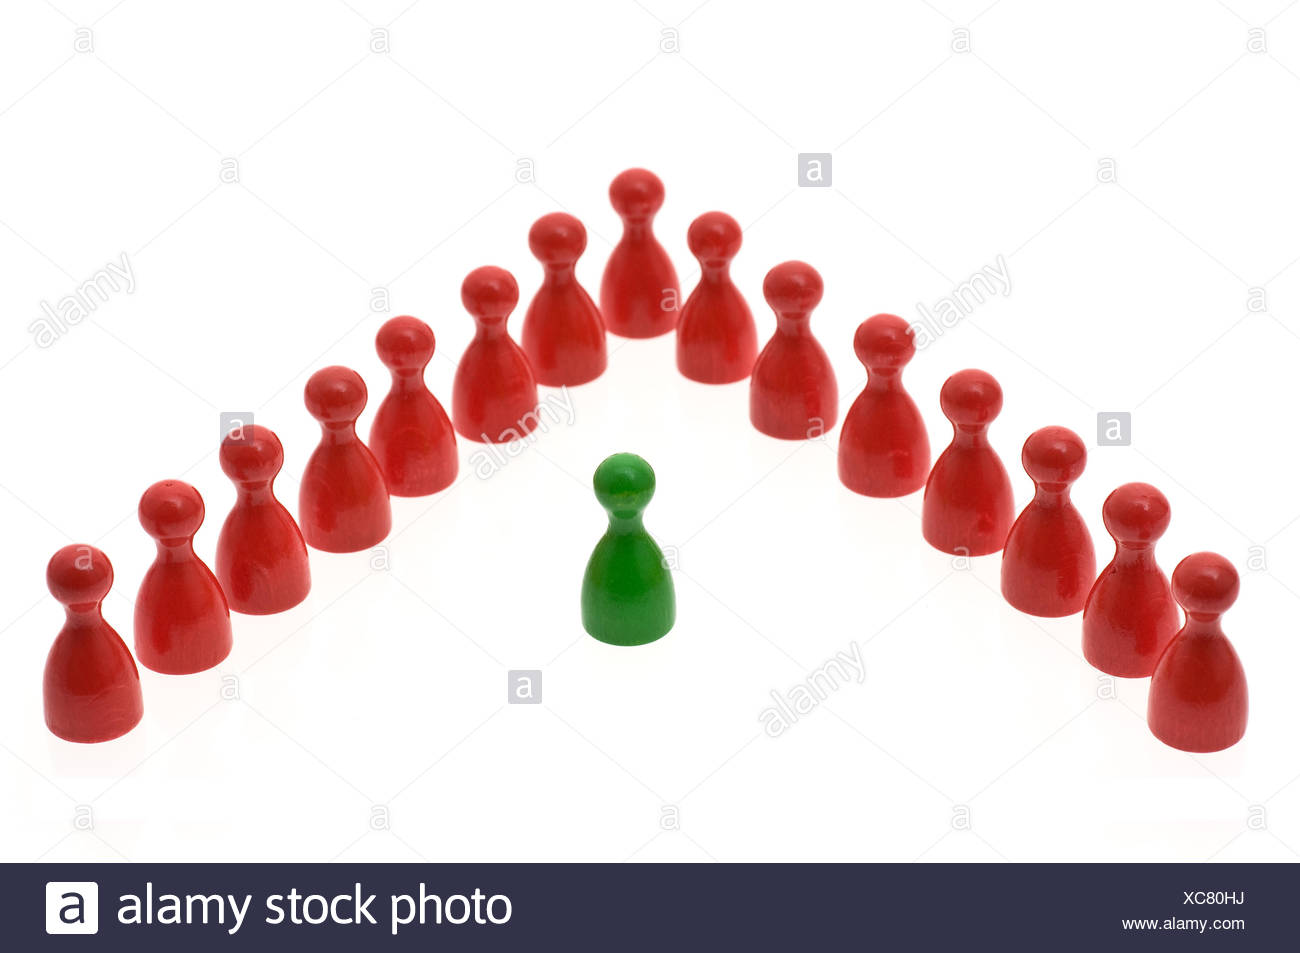 lone wolf new row outsider group apart extra insulated humans human beings - Stock Image